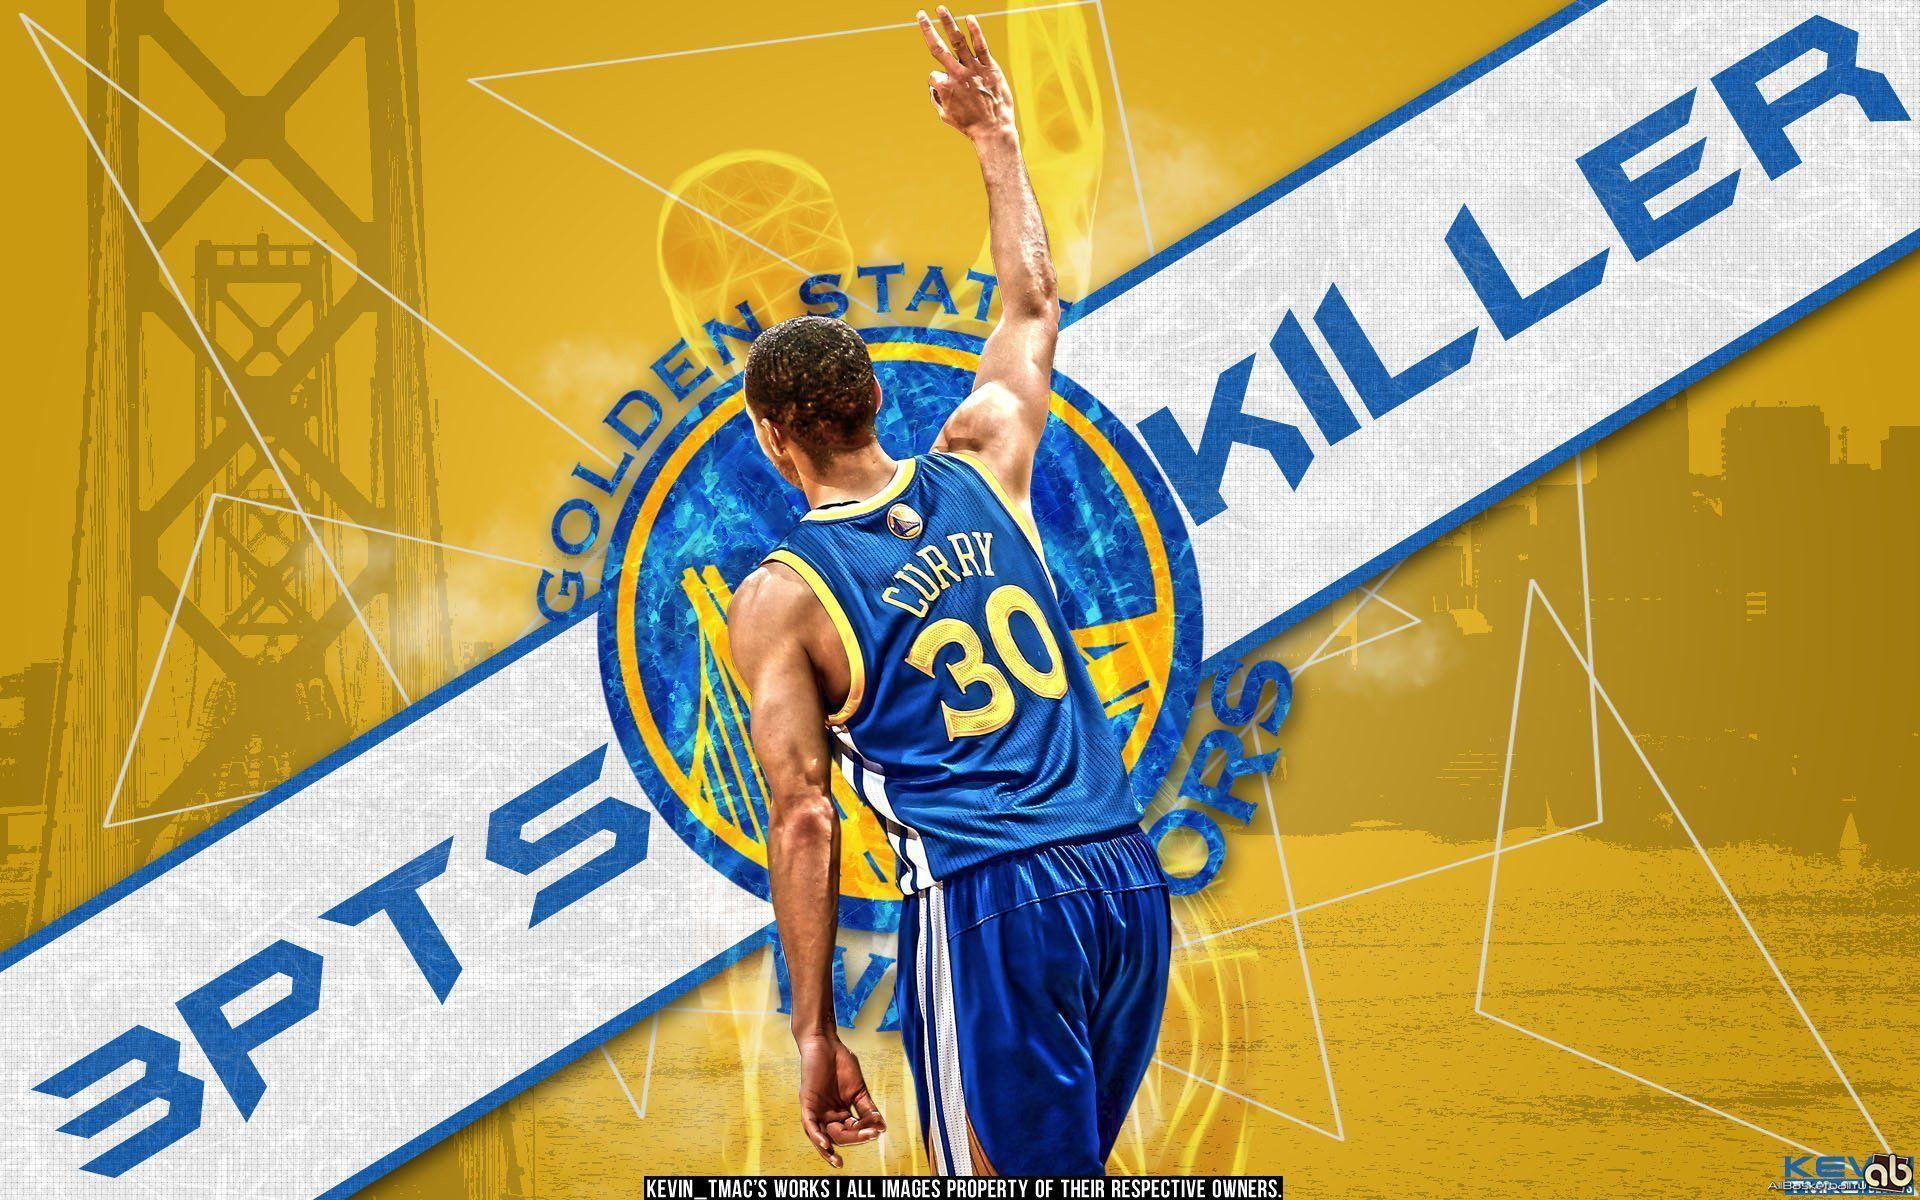 Stephen Curry Wallpaper - Best HD Wallpaper